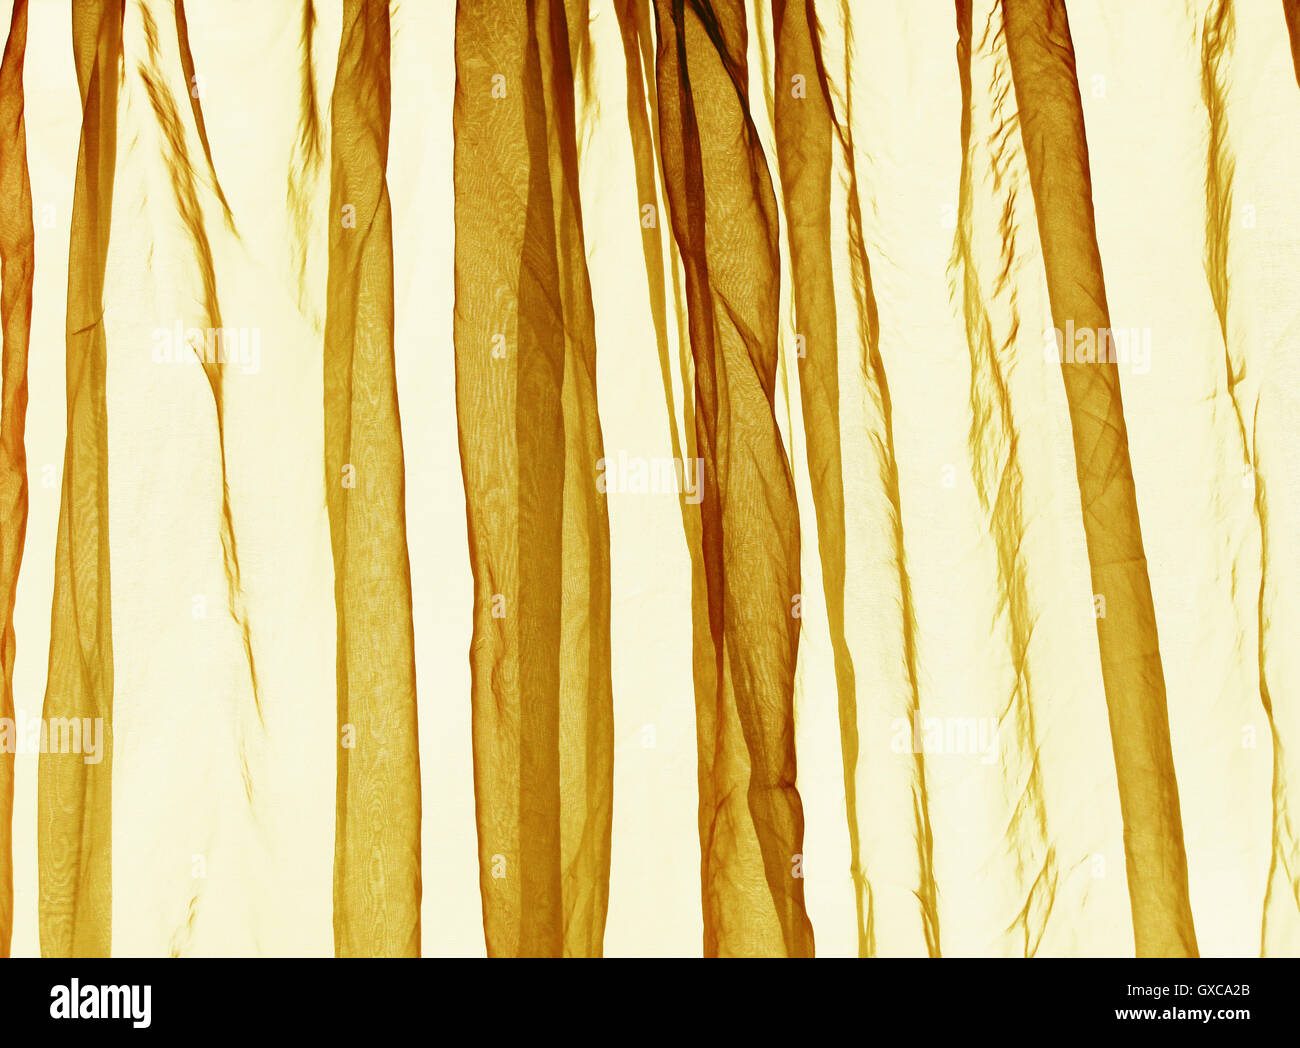 Voile curtain background yellow - Stock Image